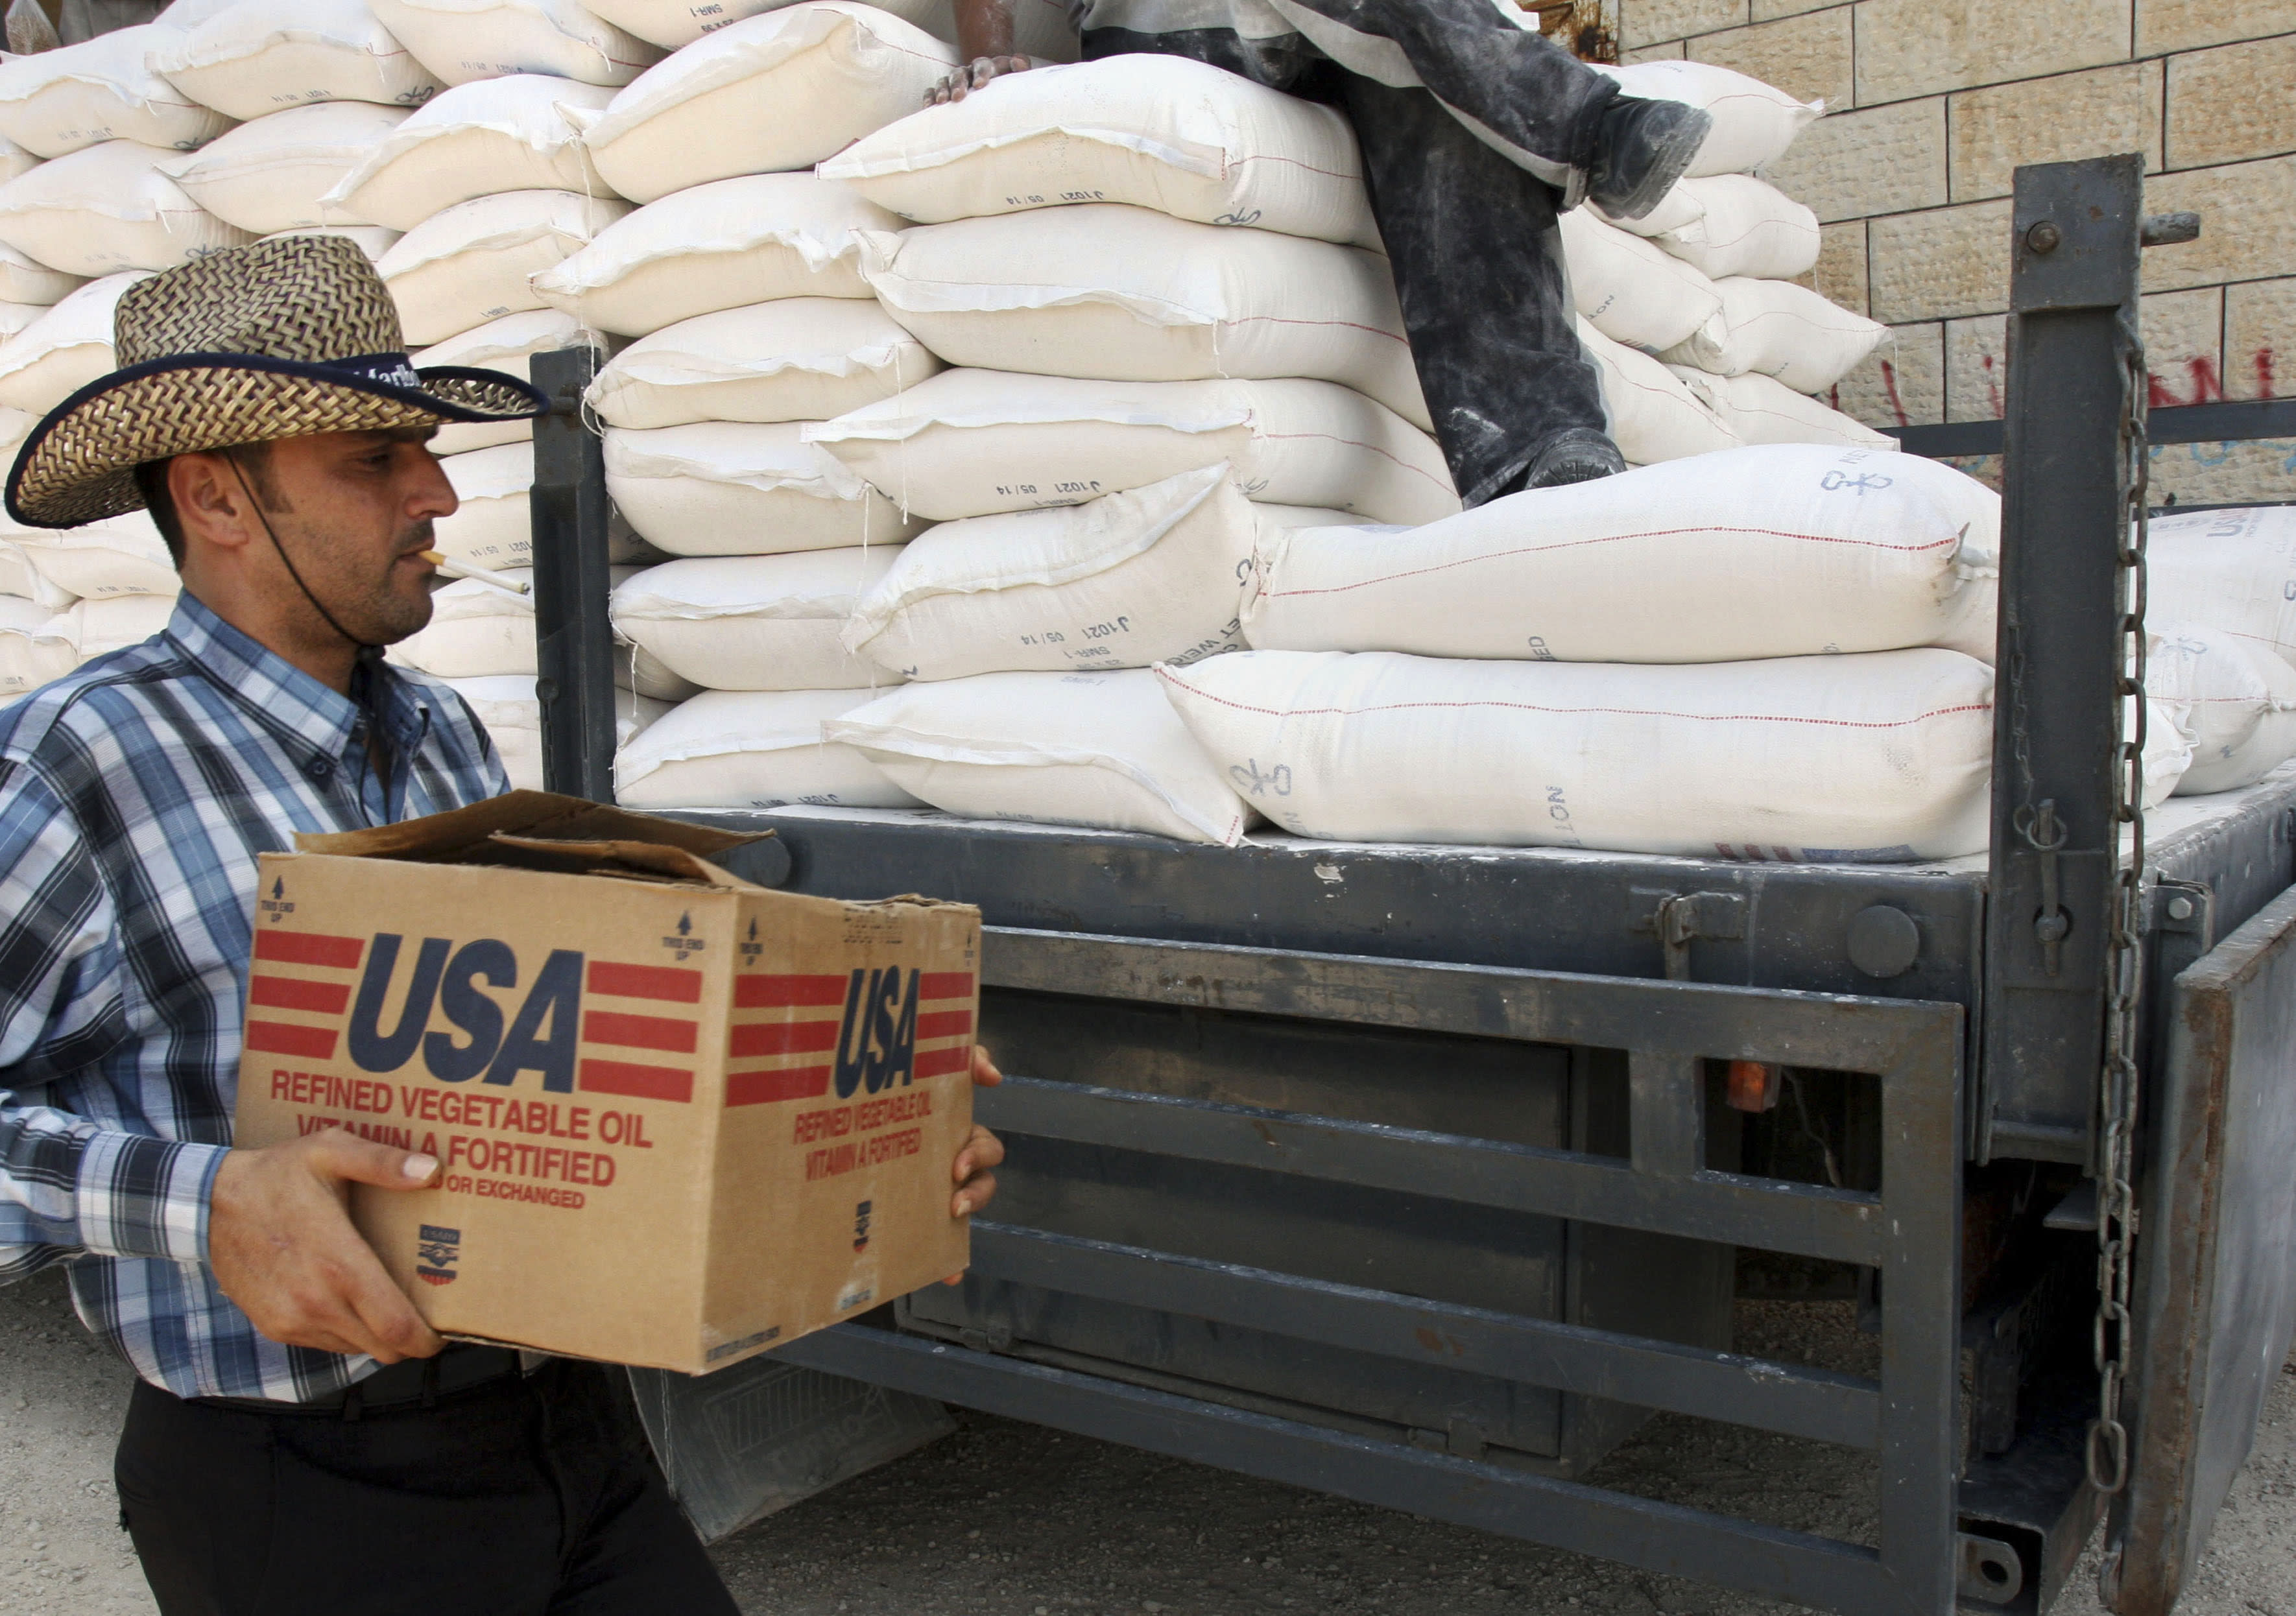 FILE - In this June 4, 2008 file photo, a Palestinian carries a box of vegetable oil as he walks past bags of flour, both donated by the United States Agency for International Development, at a depot in the West Bank village of Anin near Jenin. Tens of thousands of Palestinians are no longer getting food aid or health services from America after the Trump administration's decision in 2018 to cut more than $200 million in aid to the Palestinians. Before the aid cuts were announced, it provided food aid -- branded as a gift from the American people -- to more than 180,000 Palestinians in the Israeli-occupied West Bank and Gaza on behalf of the World Food Program. (AP Photo/Mohammed Ballas, File)